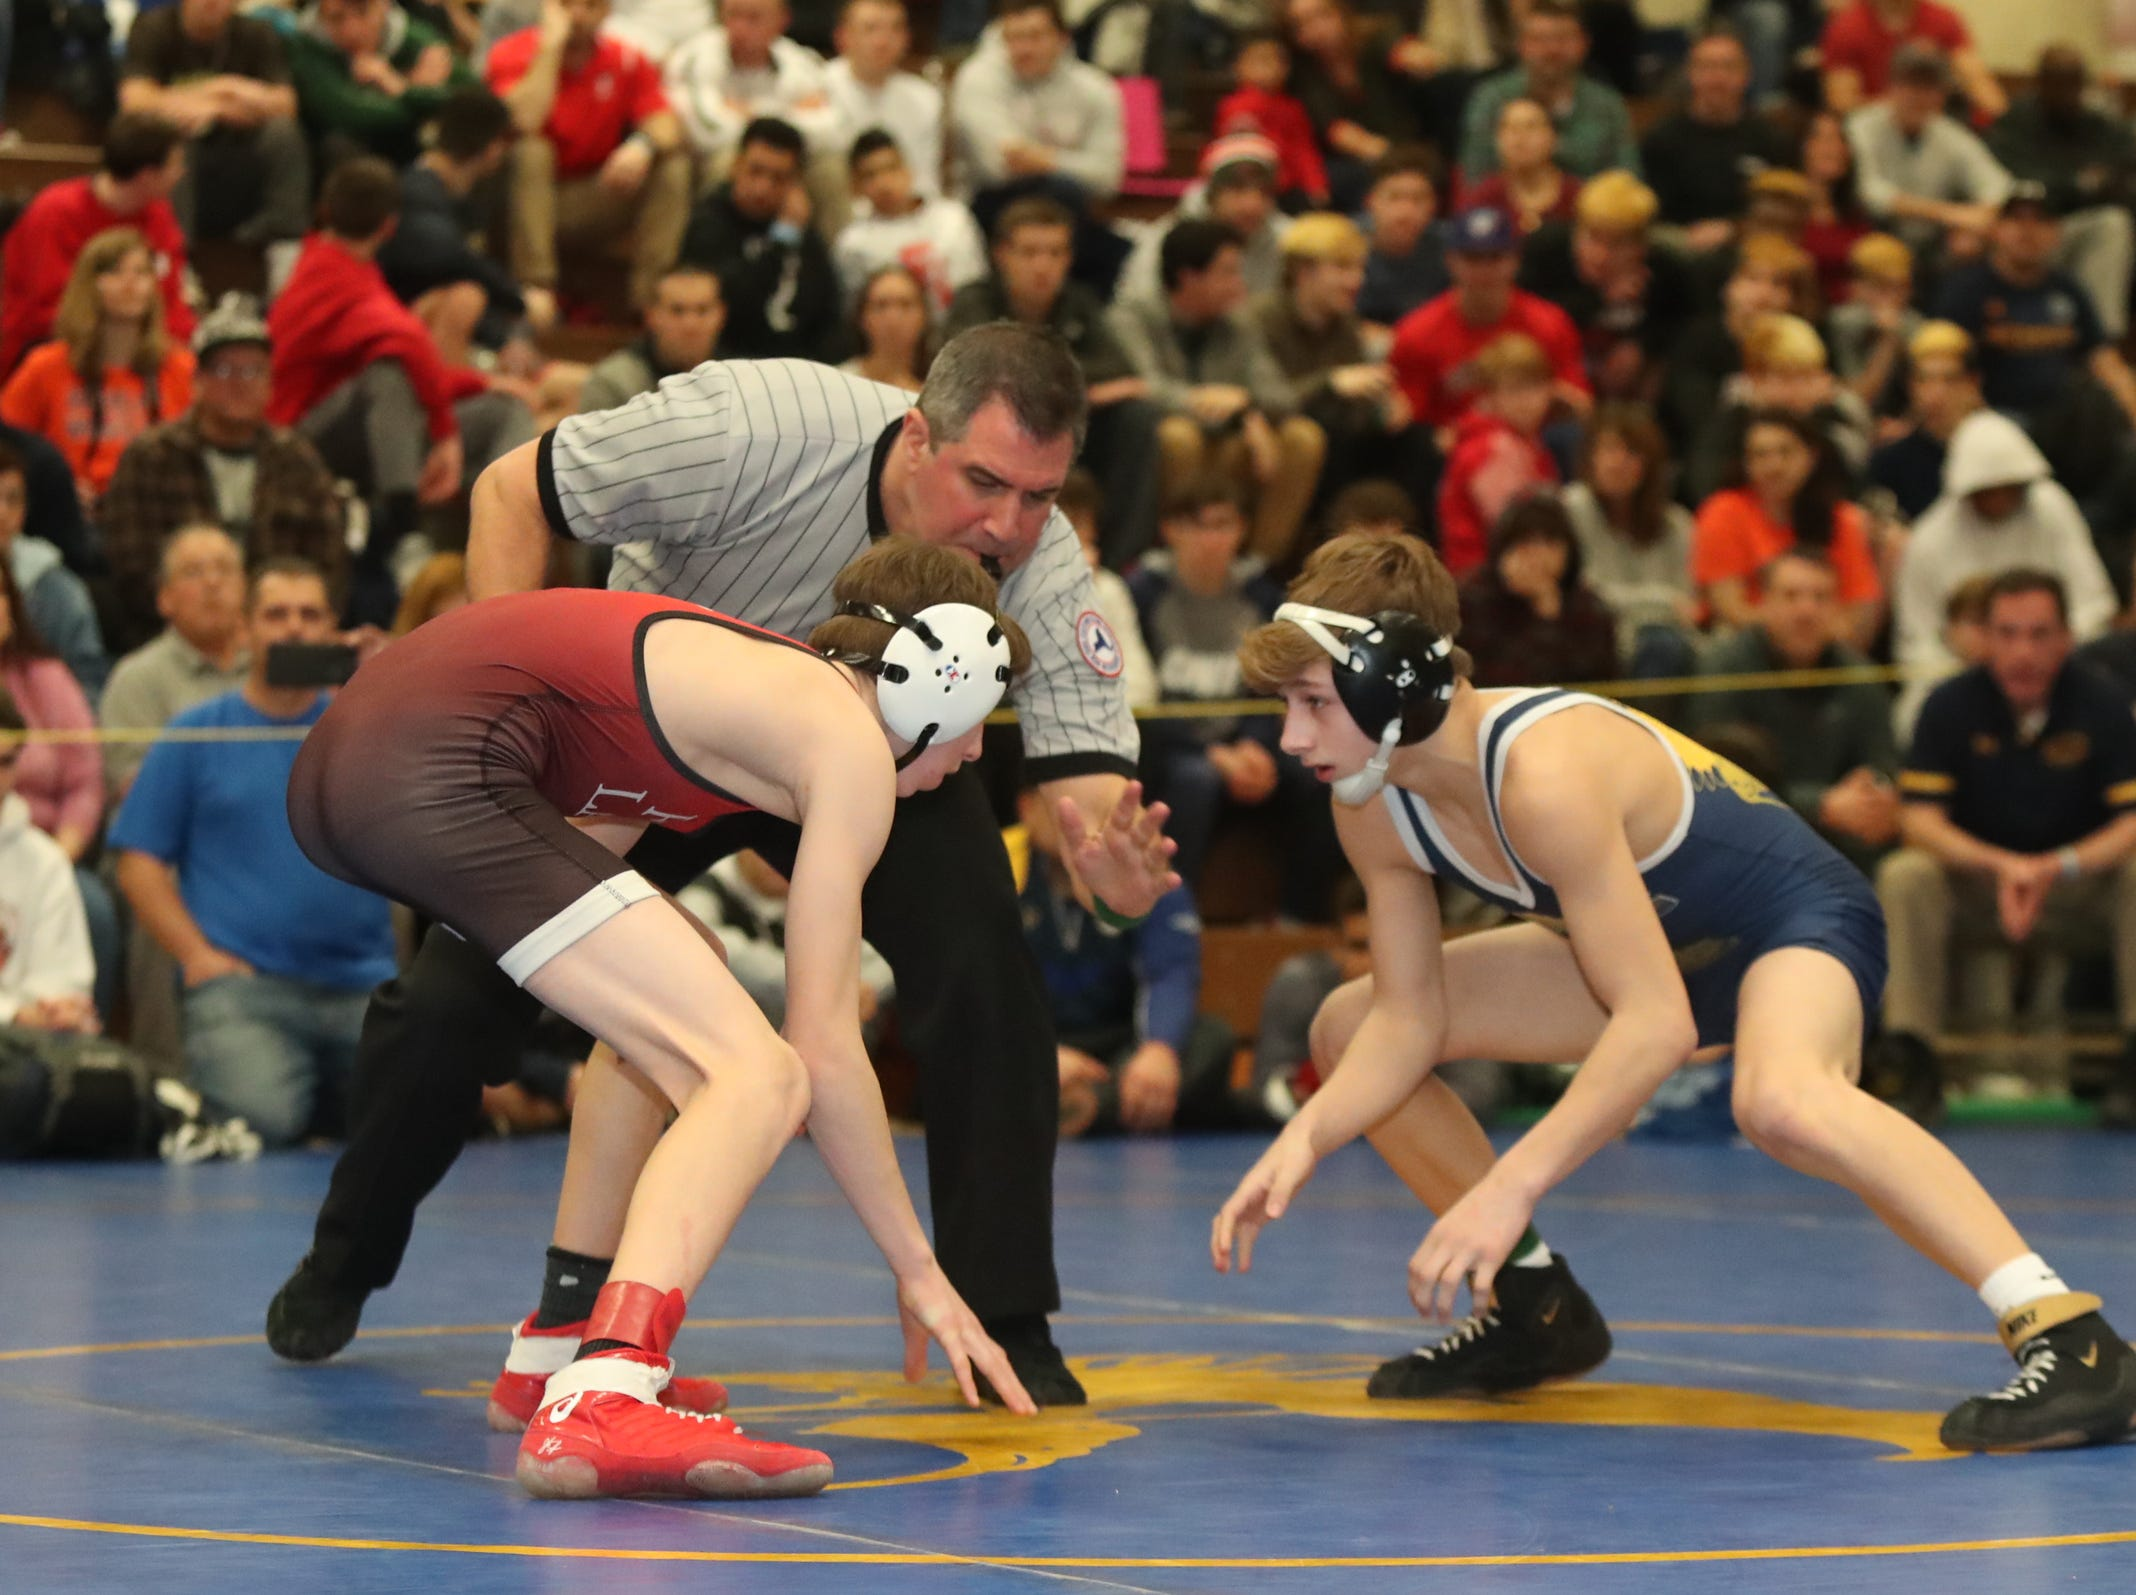 Fox Lane's Jake Hoffman defeats Mahopac's Angelo Centrone in the 99-pound match of the division I wrestling finals at Clarkstown South High School on Sunday, February 10, 2019.